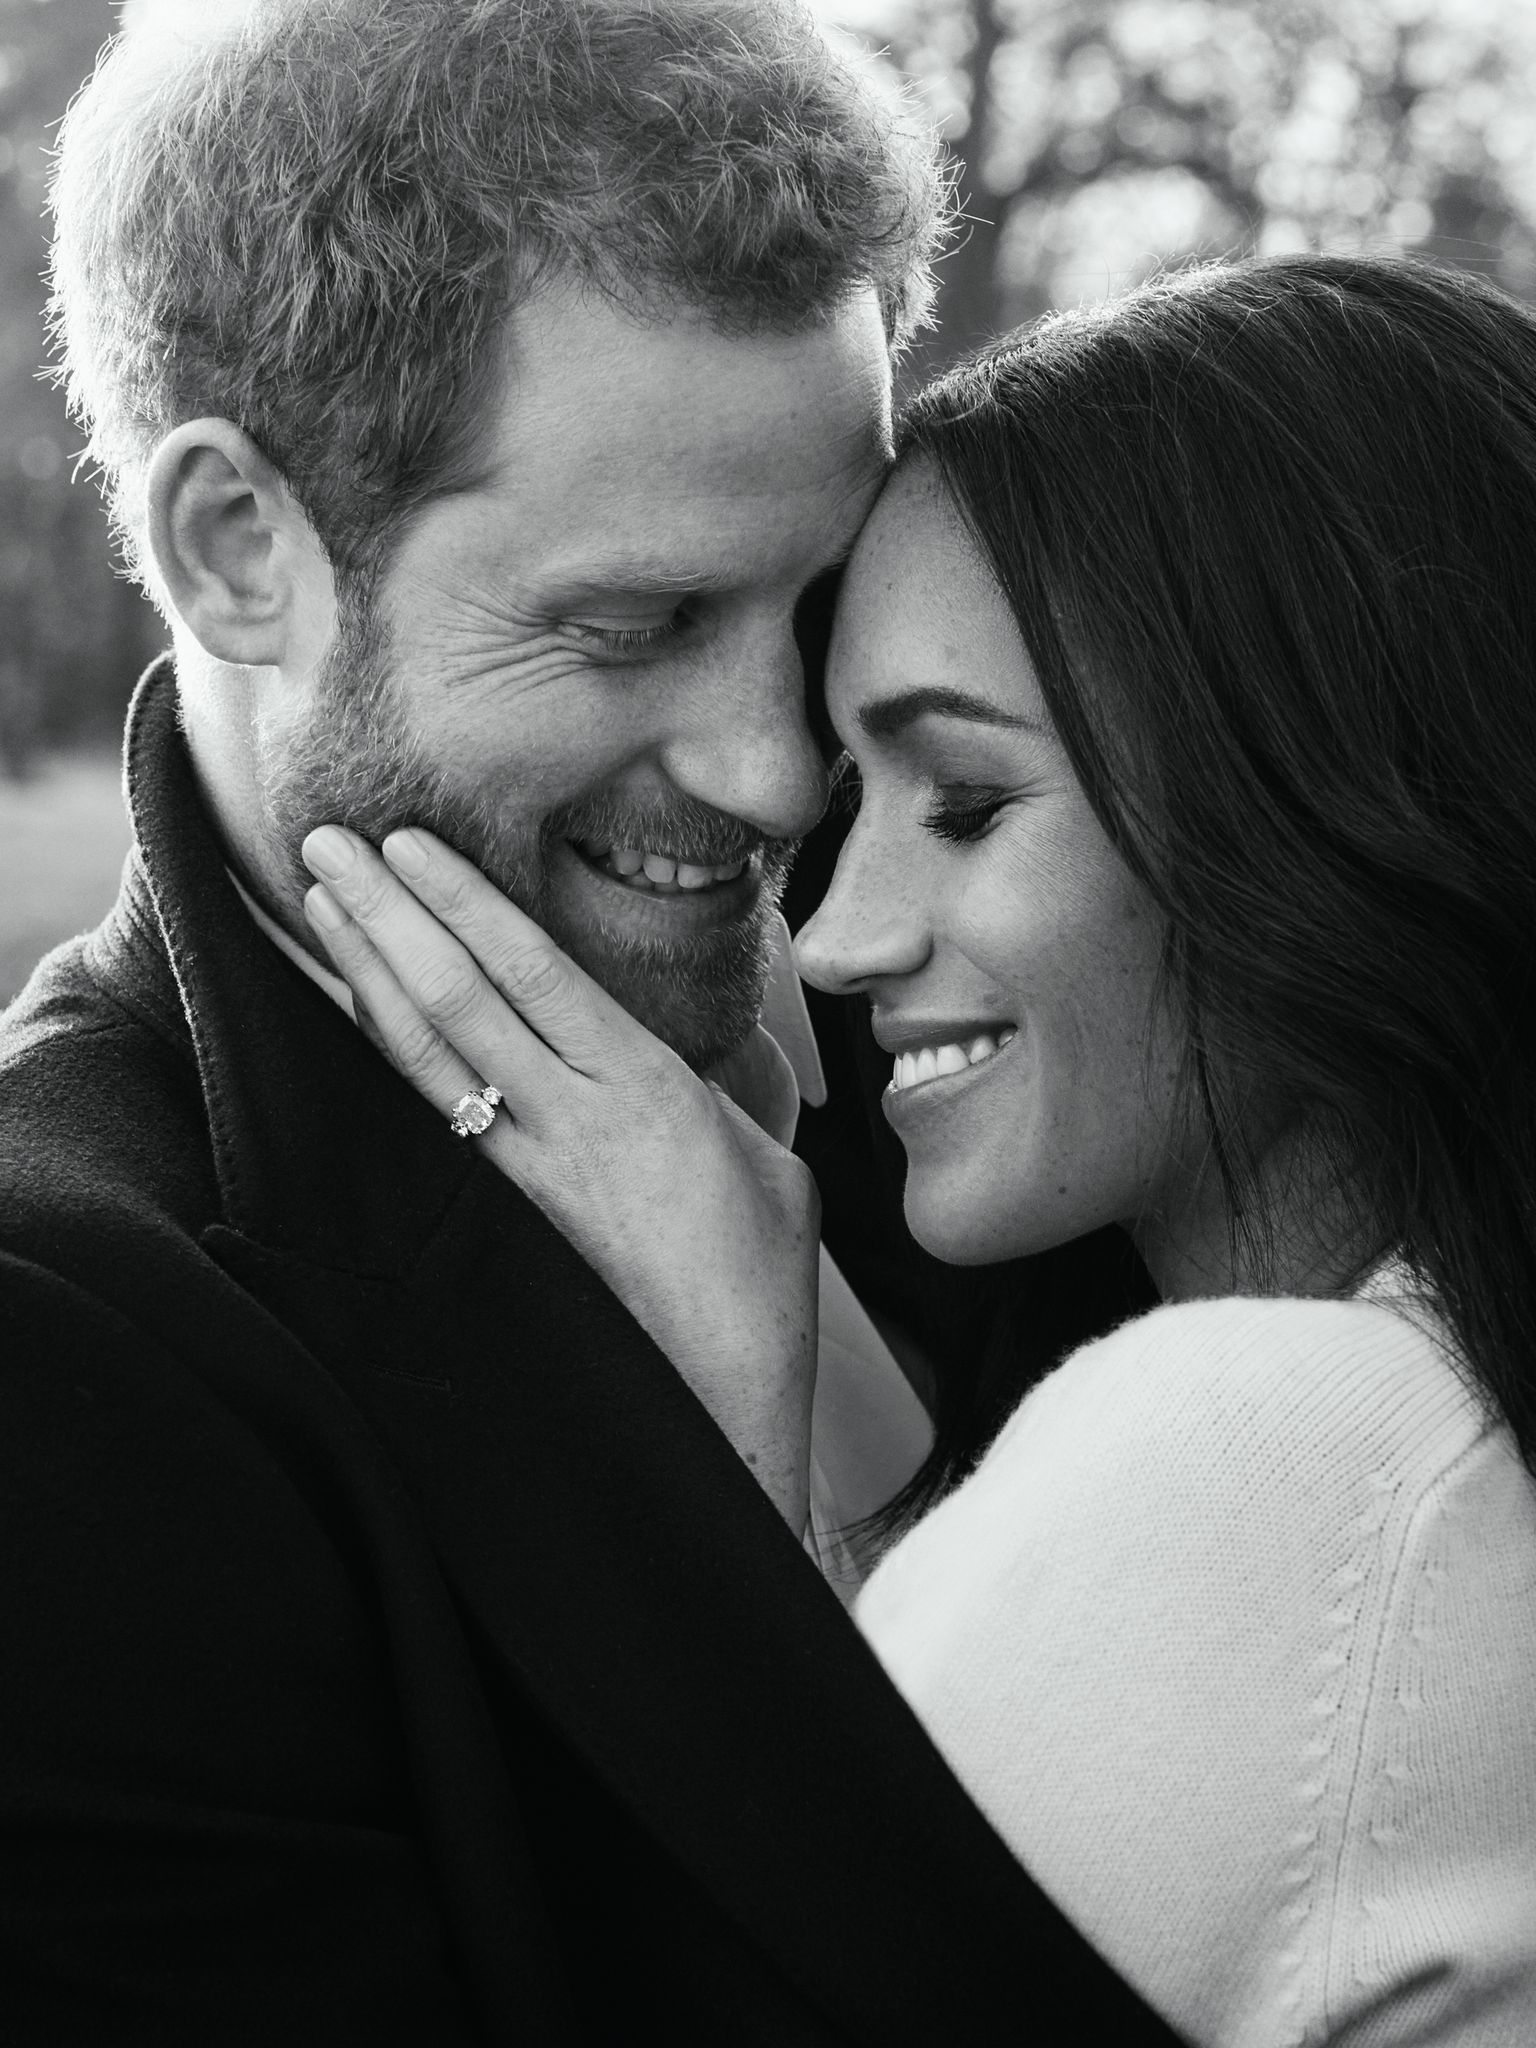 Prince Harry And Meghan Markle Engagement | Getty Images / Global Images Ukraine